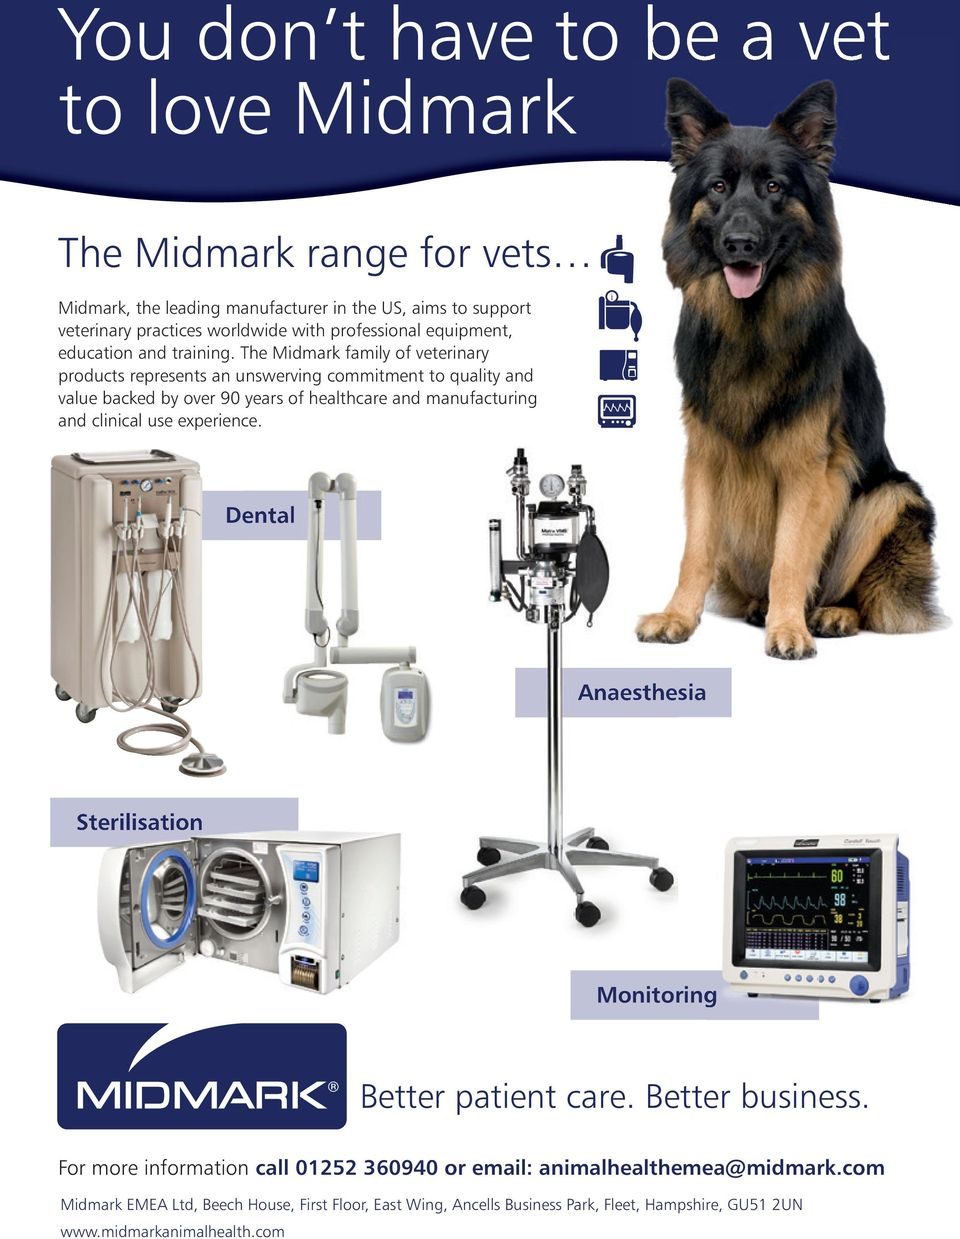 The Midmark family of veterinary products represents an unswerving commitment to quality and value backed by over 90 years of healthcare and manufacturing and clinical use